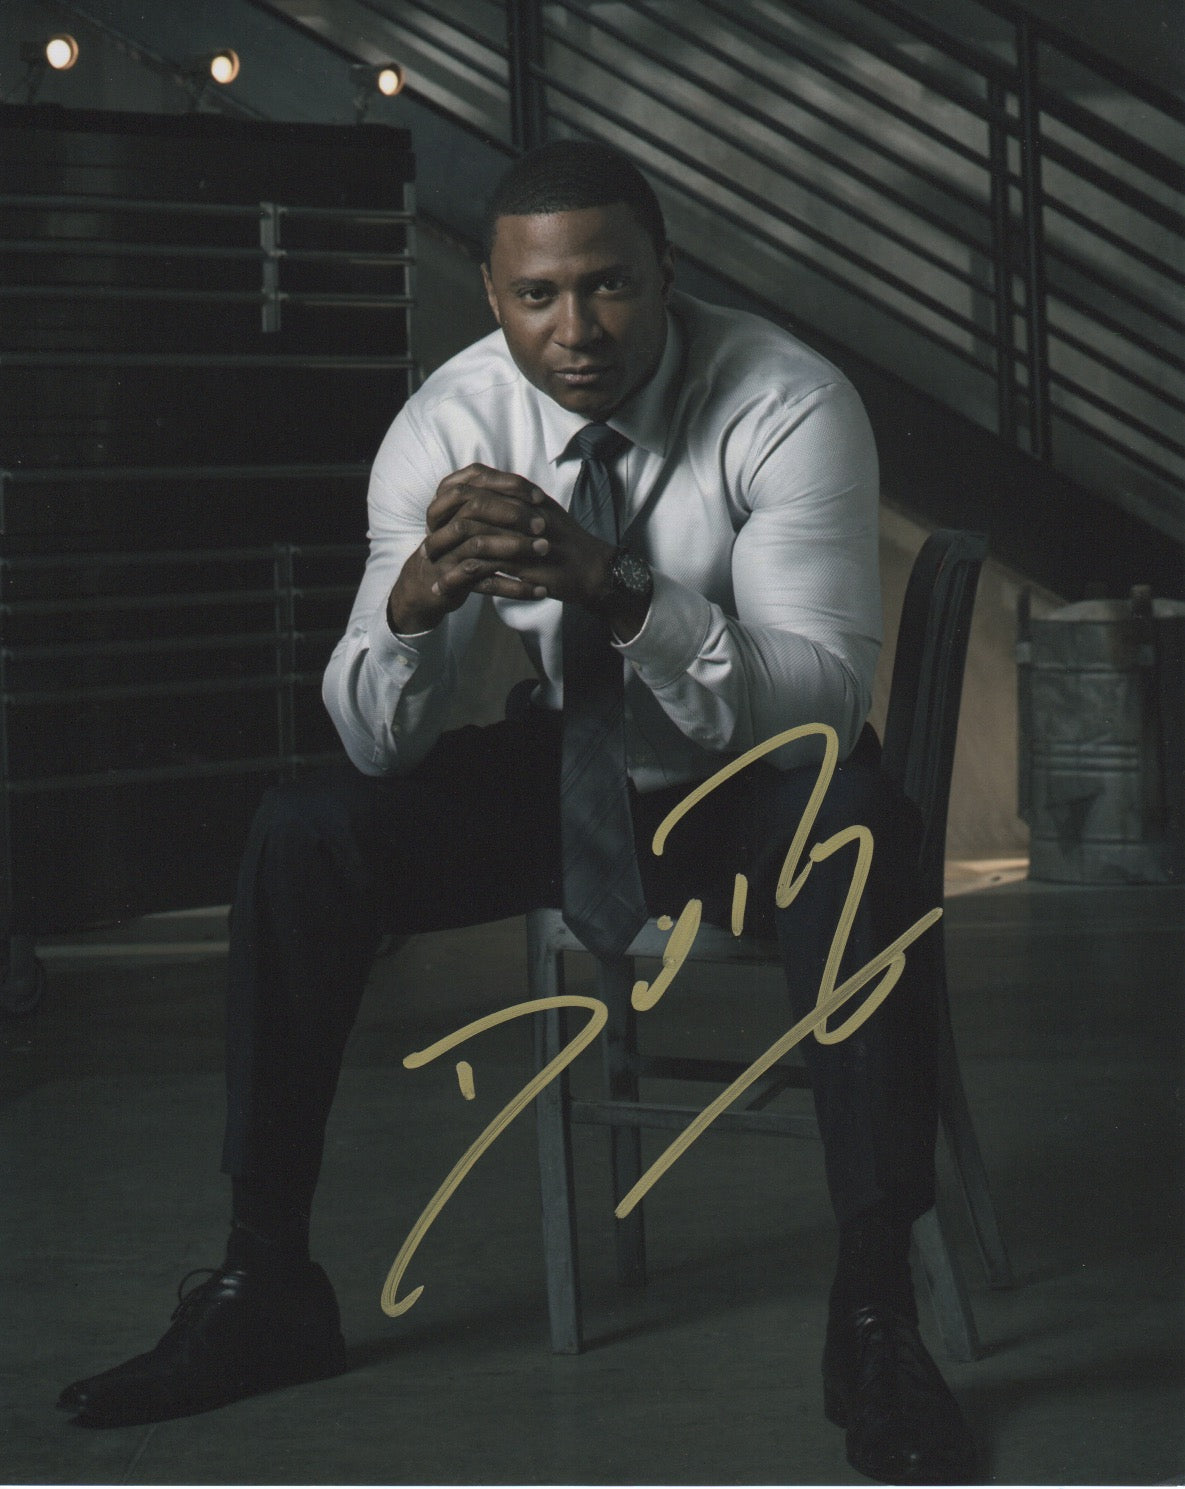 David Ramsey Arrow Signed Autograph 8x10 Photo